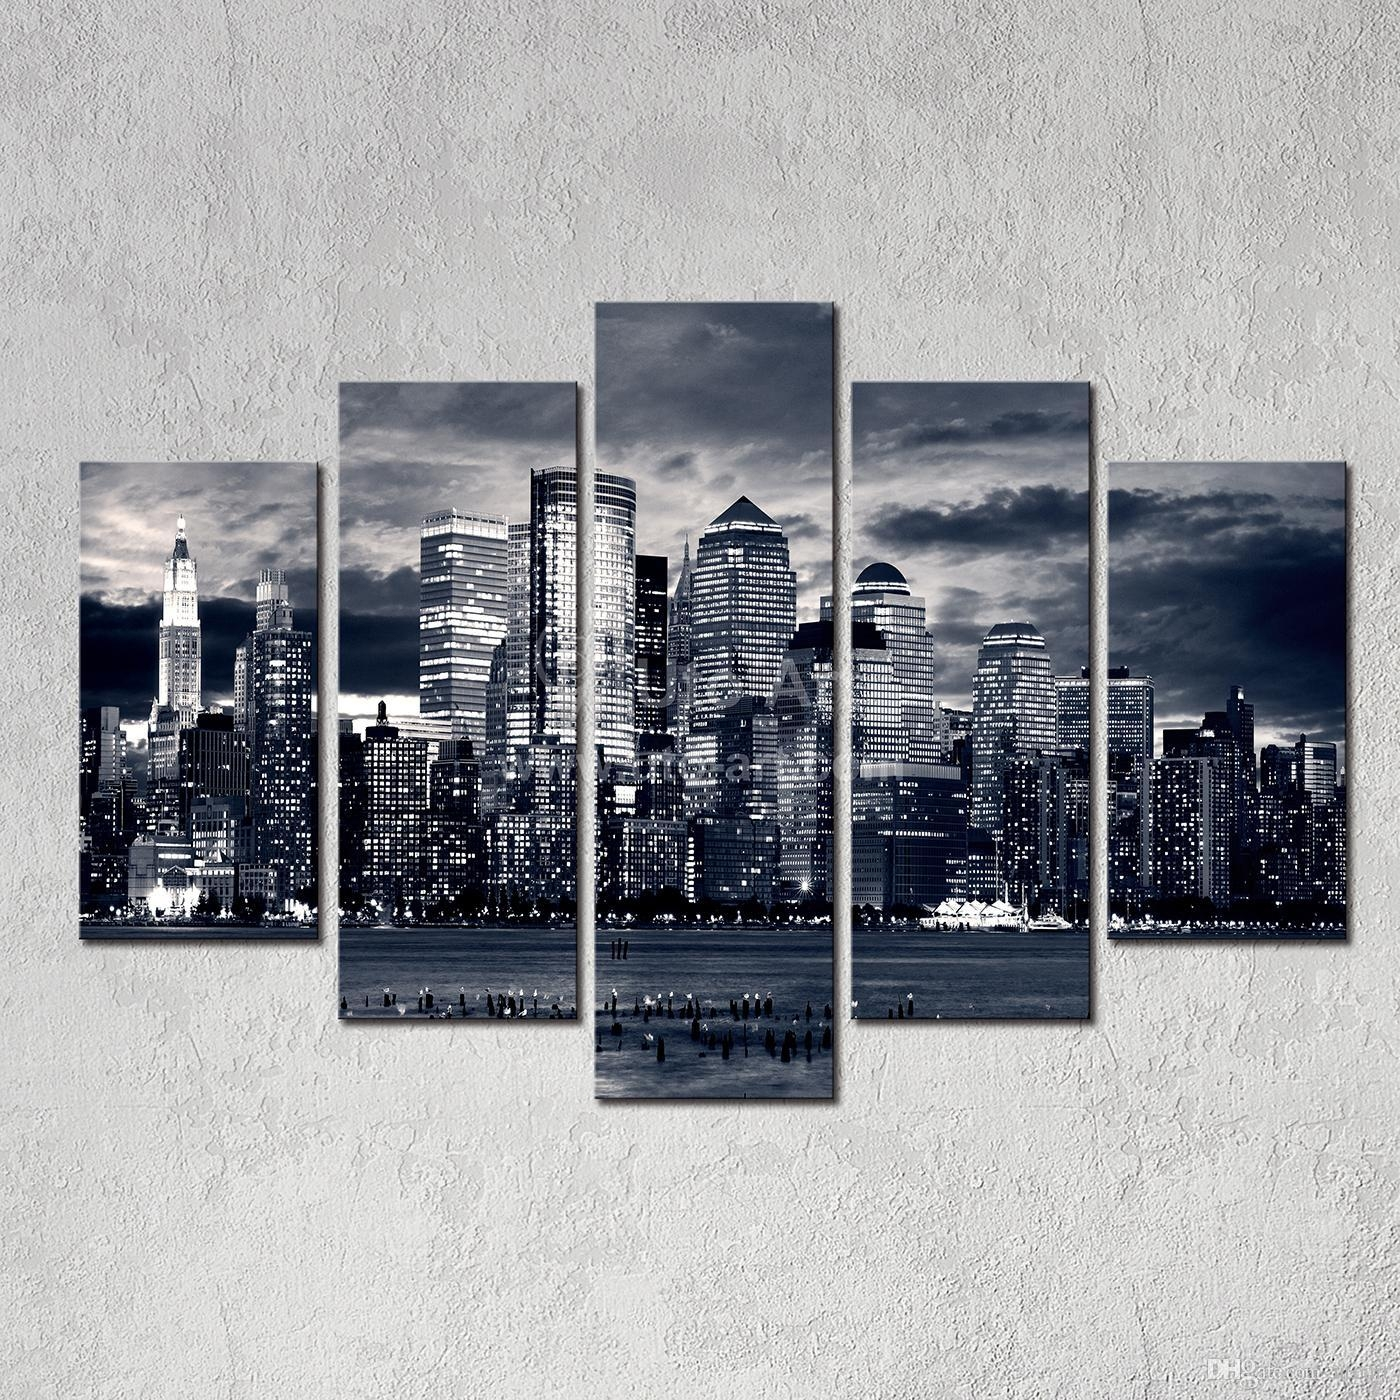 2017 Modern Home Decor New York City Painting Black White Digital Inside New York Skyline Canvas Black And White Wall Art (Image 1 of 20)